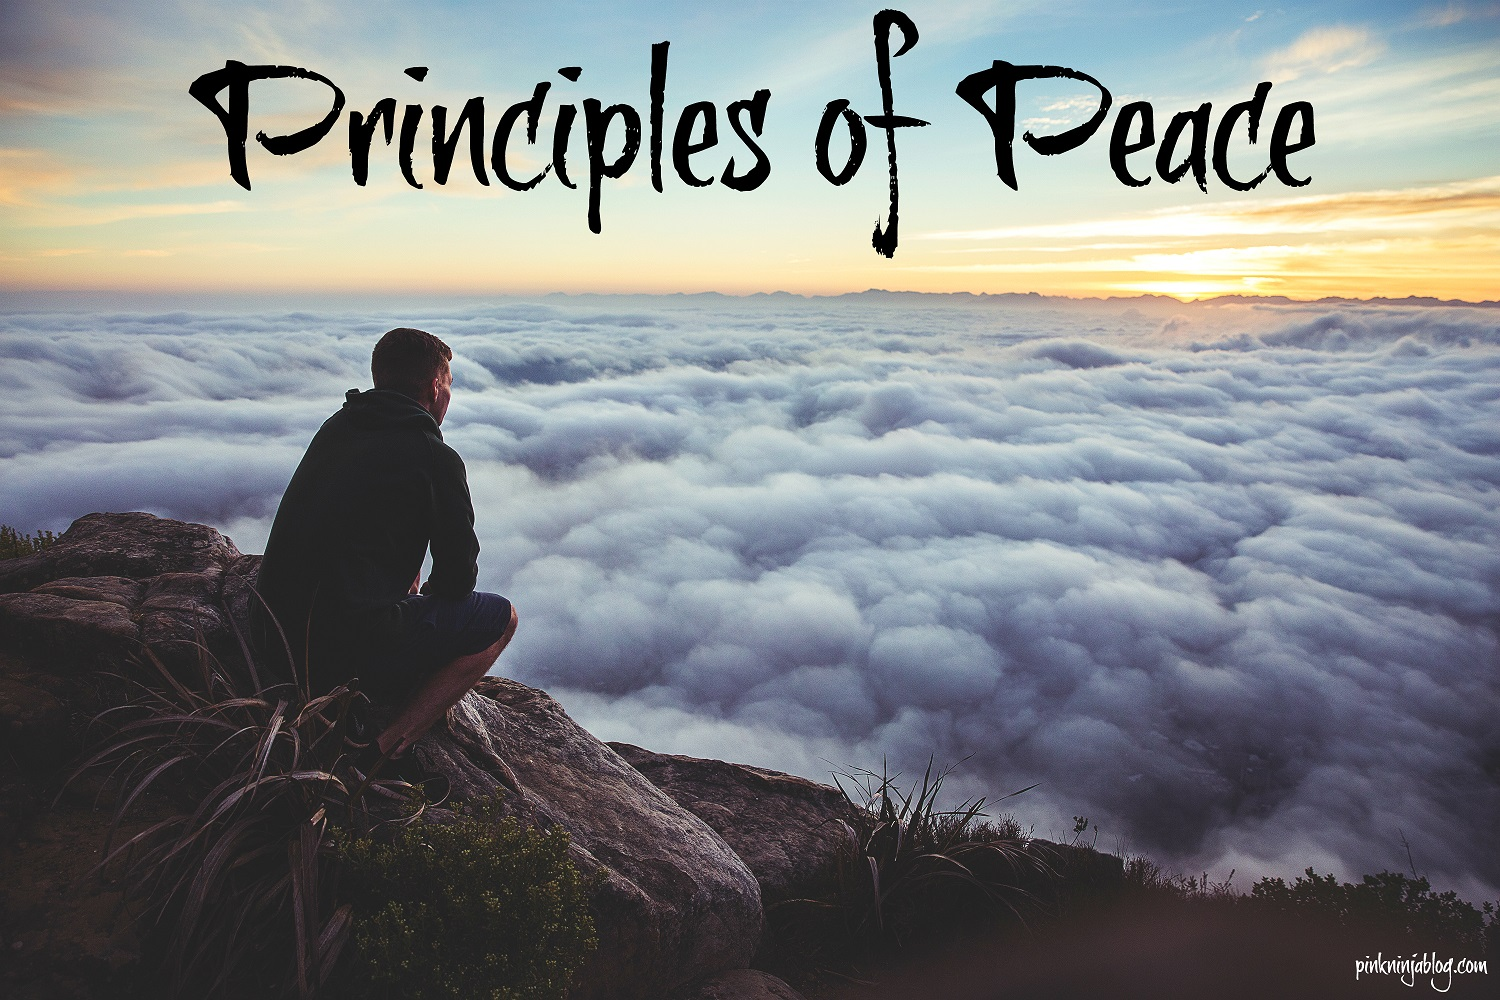 Principles of Peace